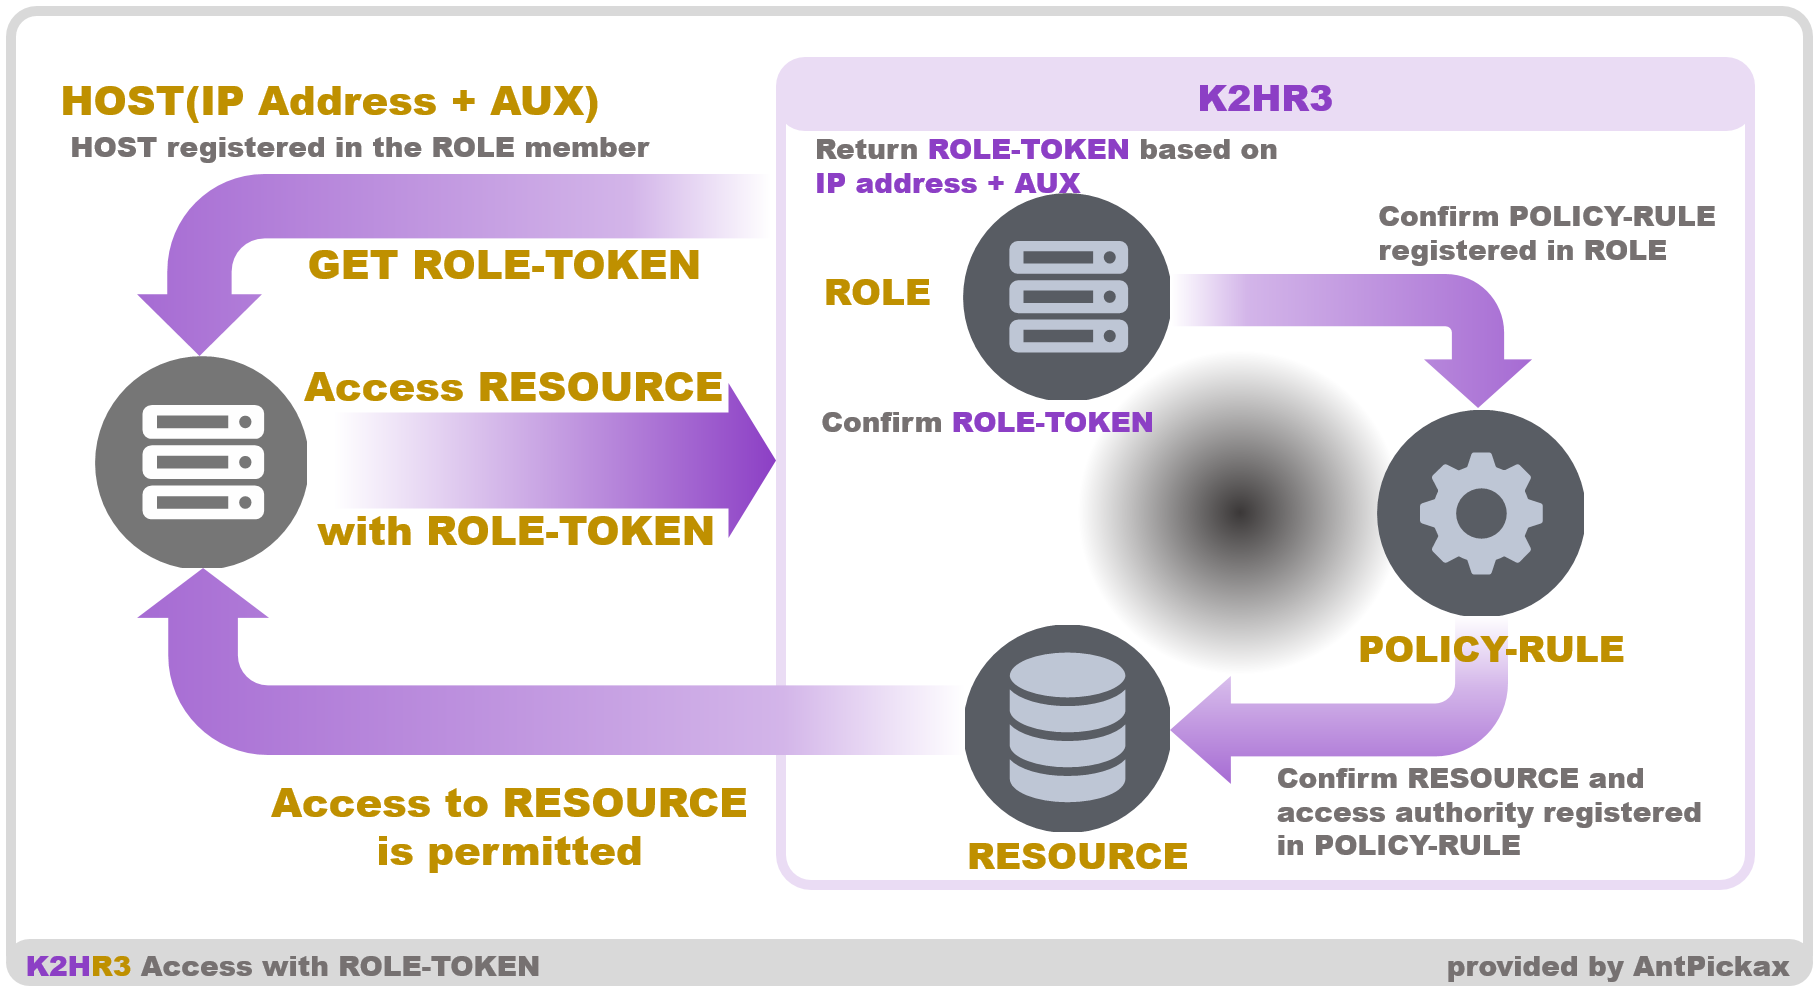 K2HR3 Usage RBAC - Role Token Access